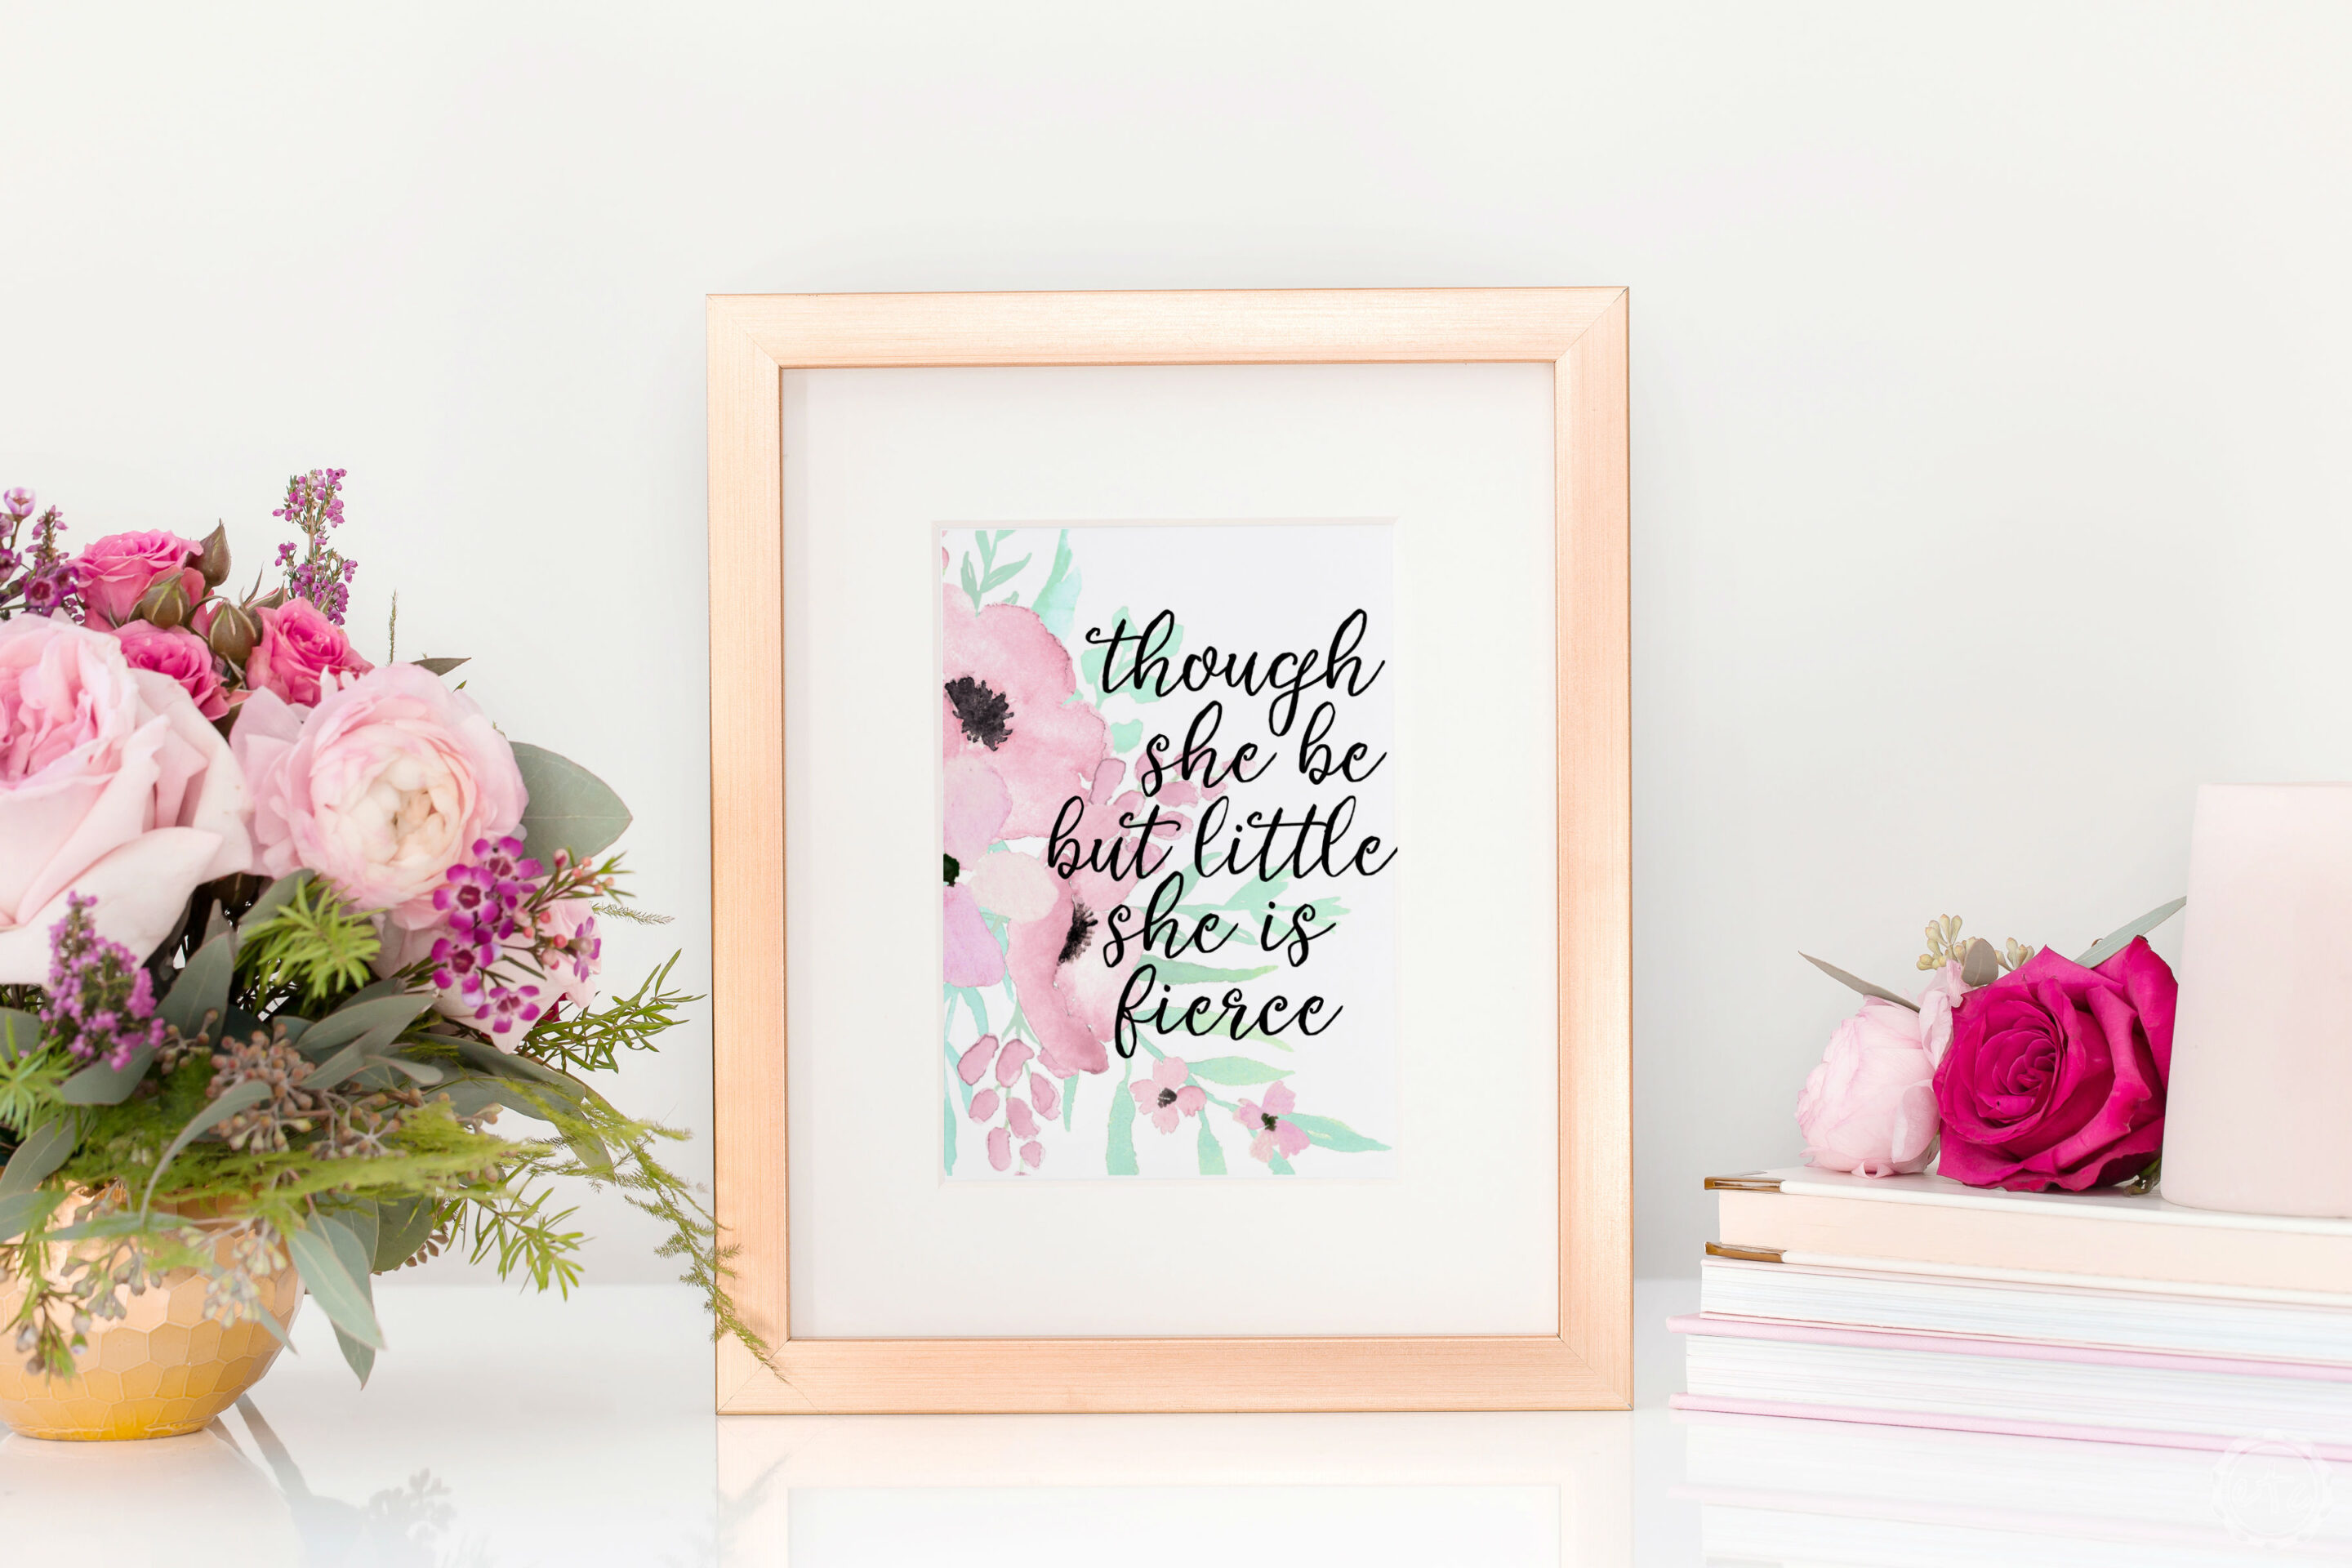 Though she be but little she is fierce Printable